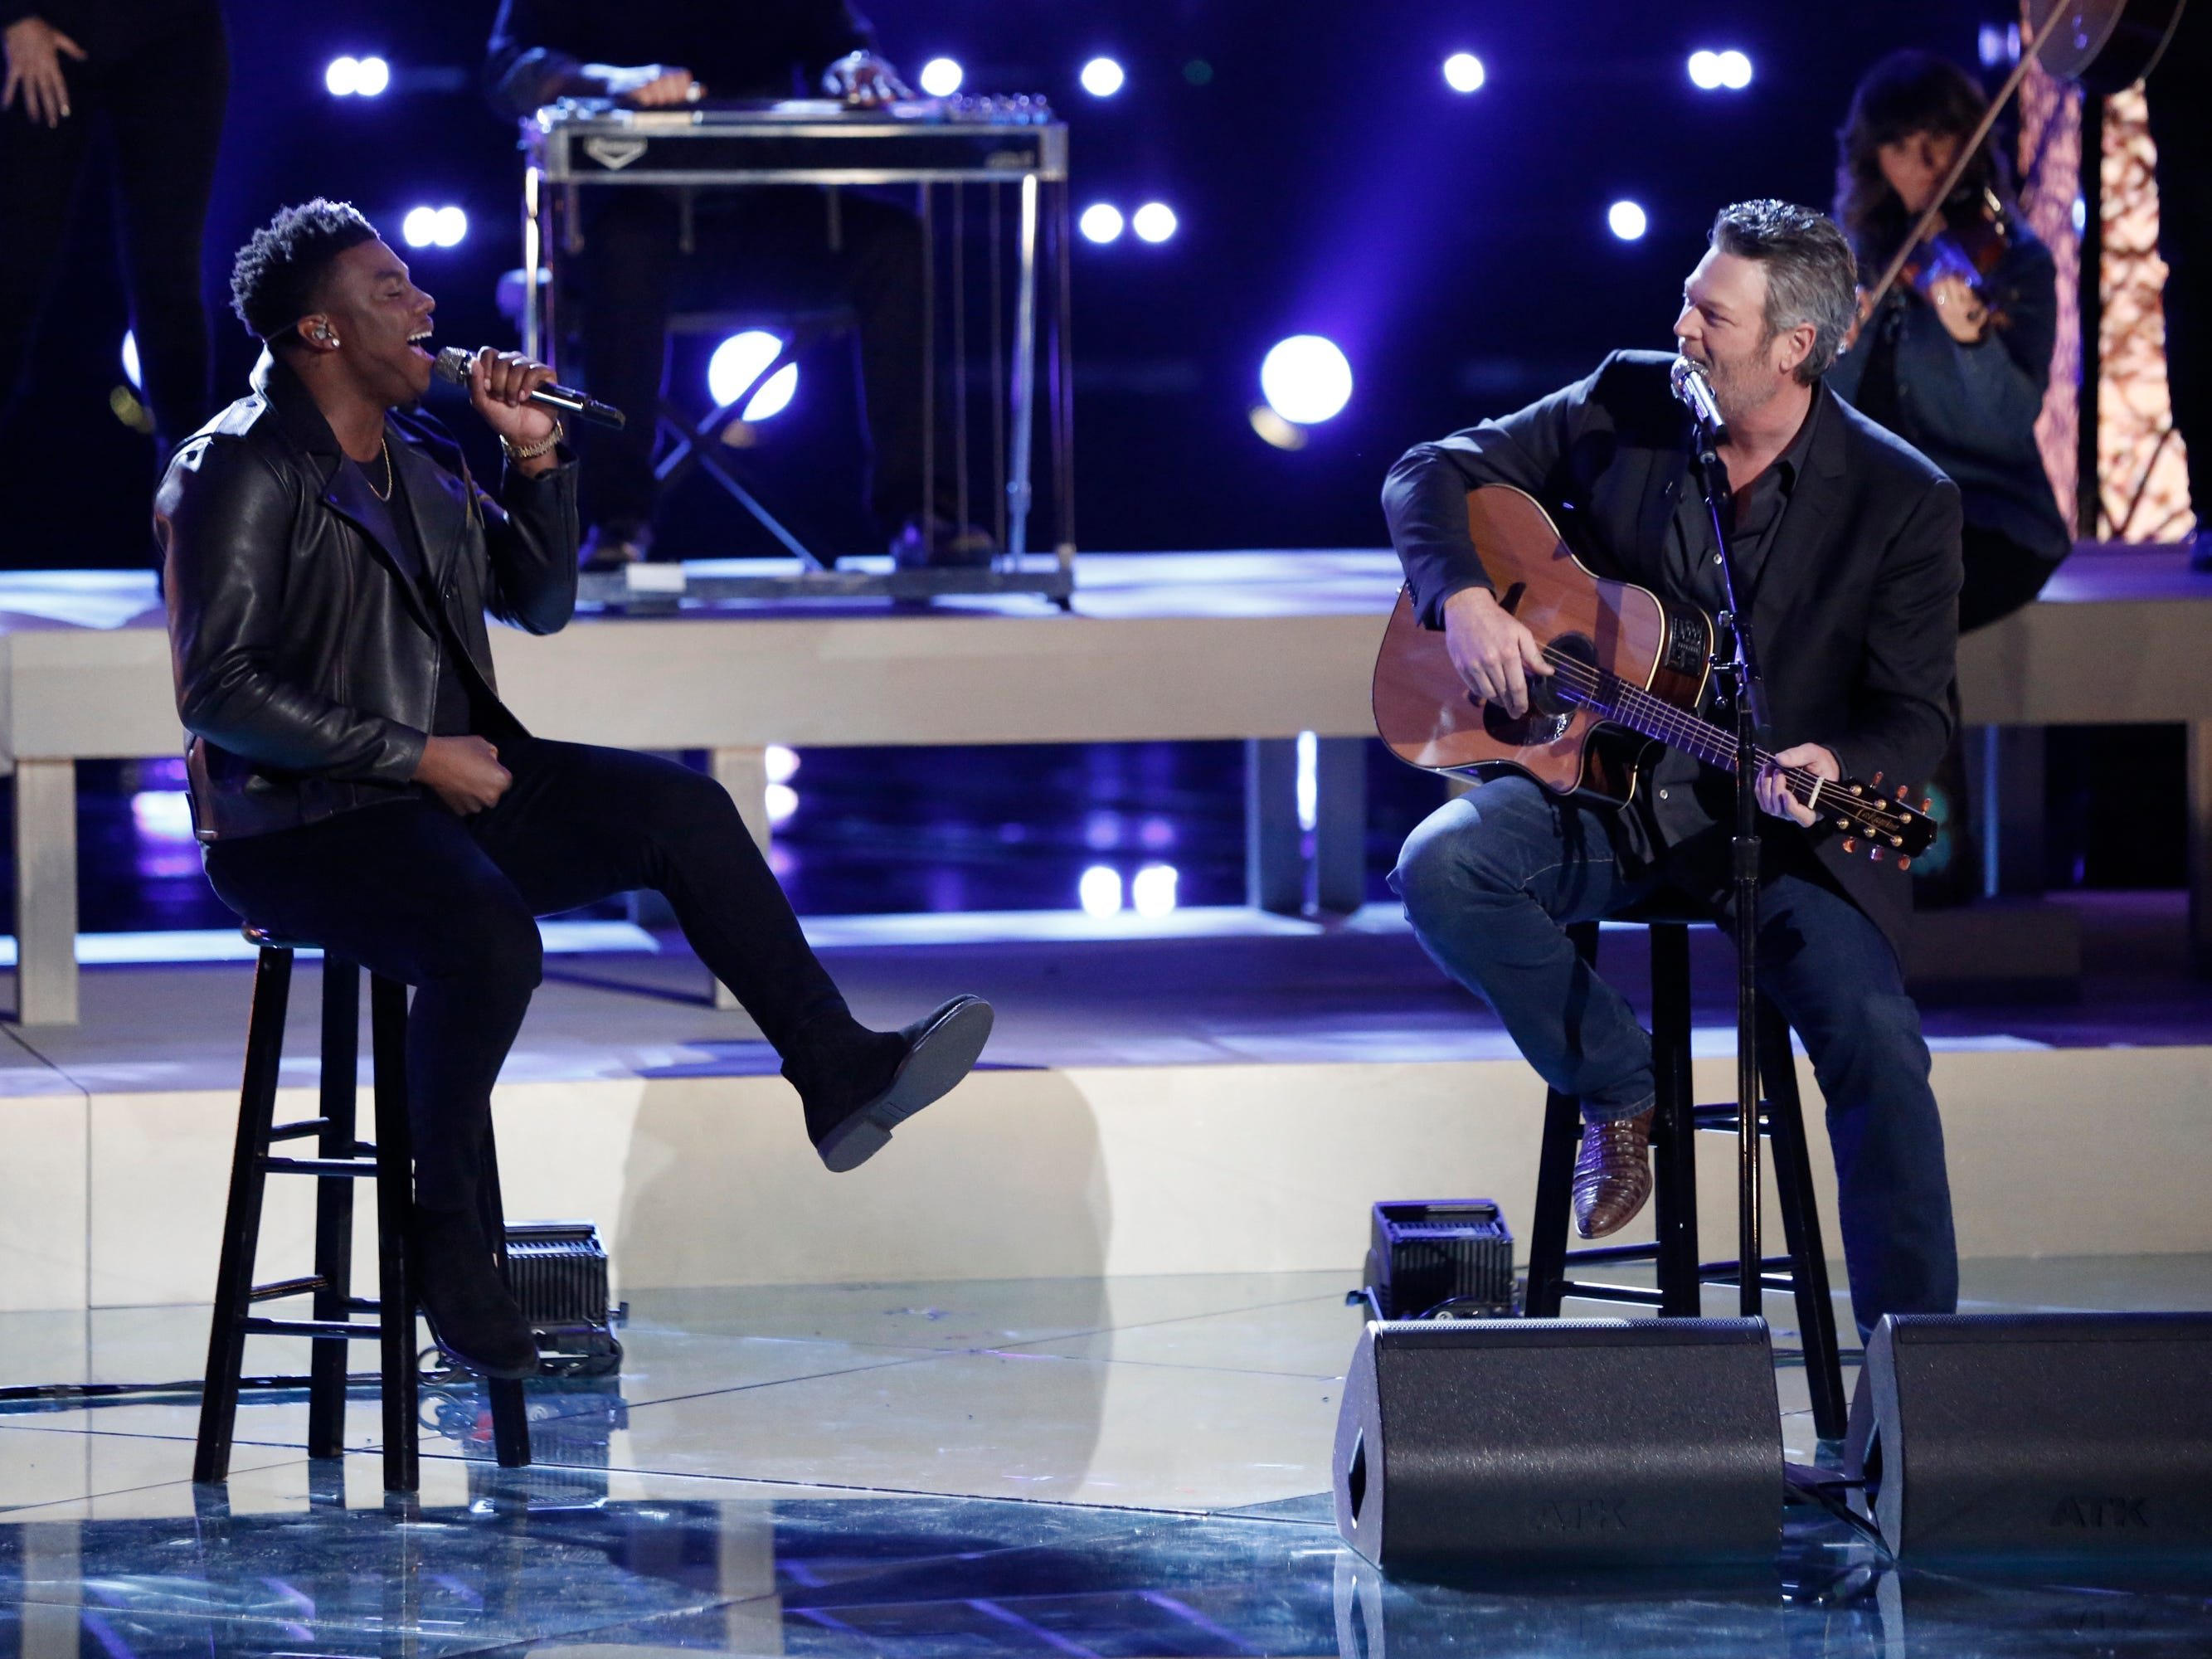 """Kirk Jay, member of Team Blake, teamed up with his coach for the George Strait country classic """"You Look So Good in Love."""""""